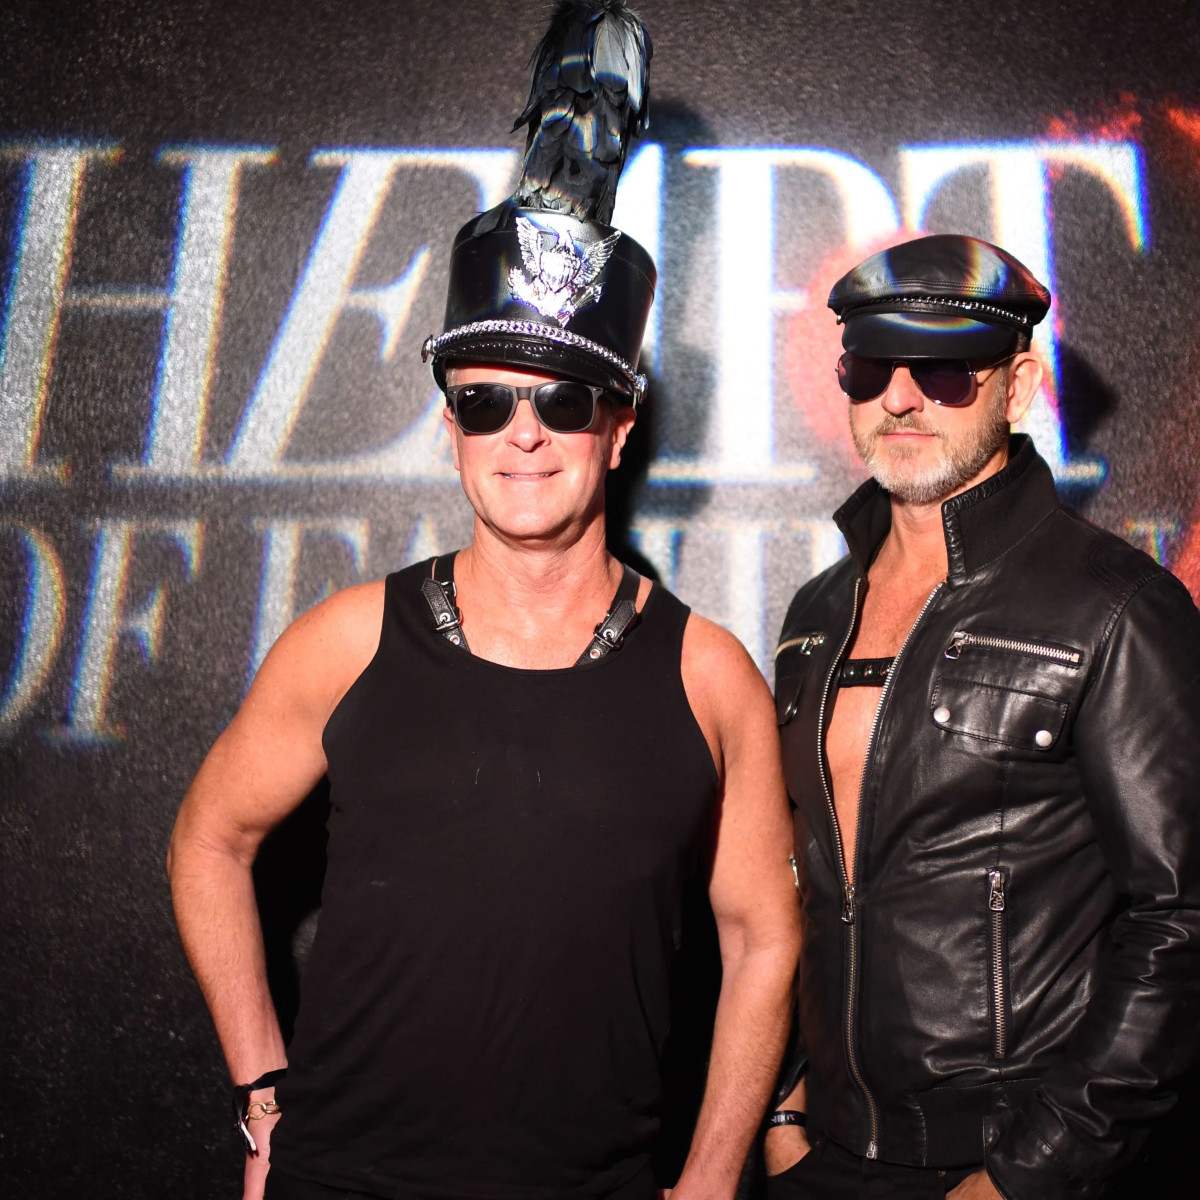 Shannon Hall, Marcus Sloan at Heart of Fashion Masquerade Ball